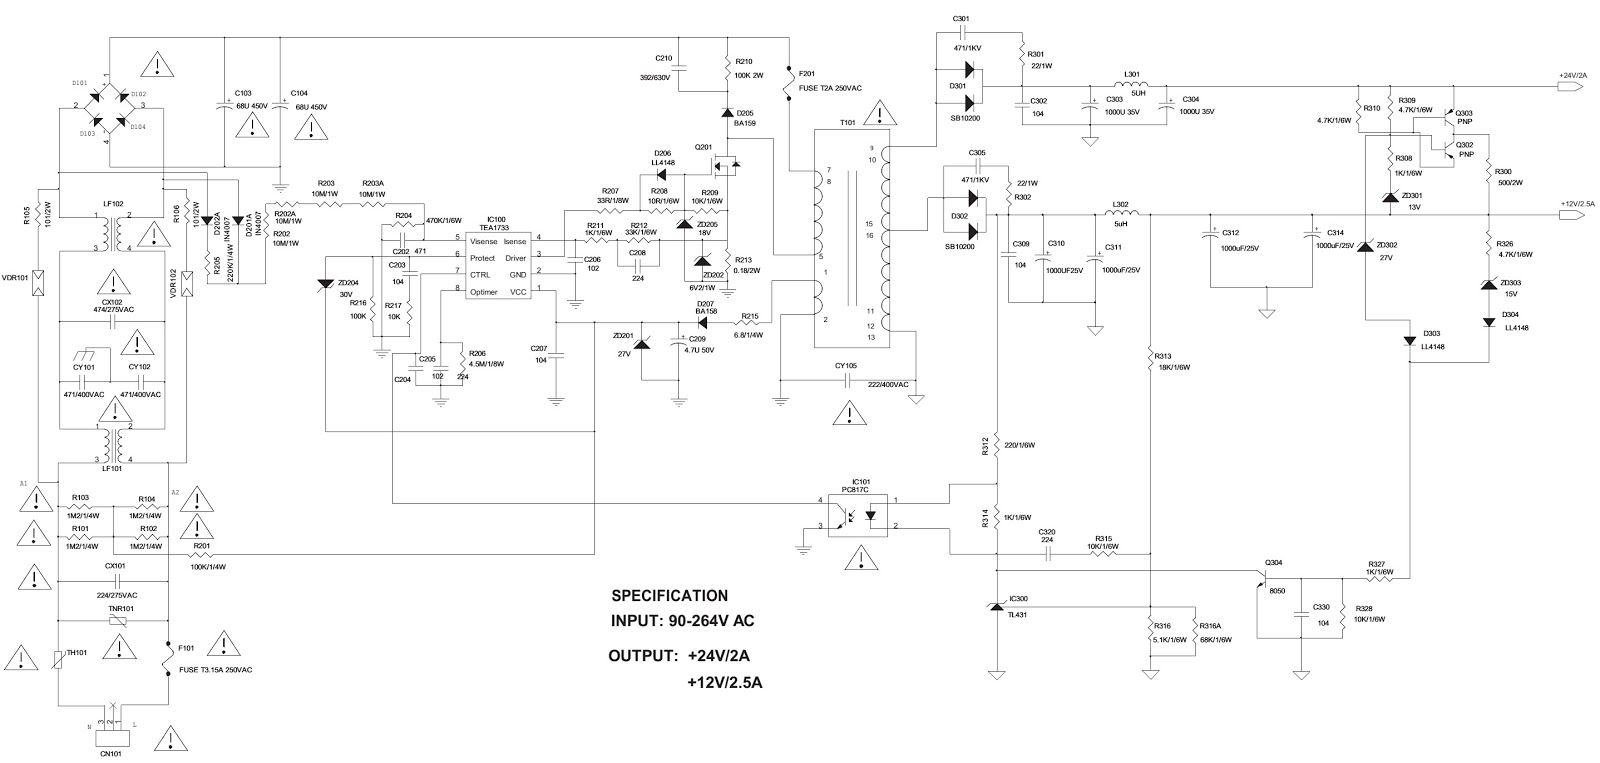 medium resolution of toshiba 40s51u wiring diagram wiring diagram site toshiba 40s51u wiring diagram